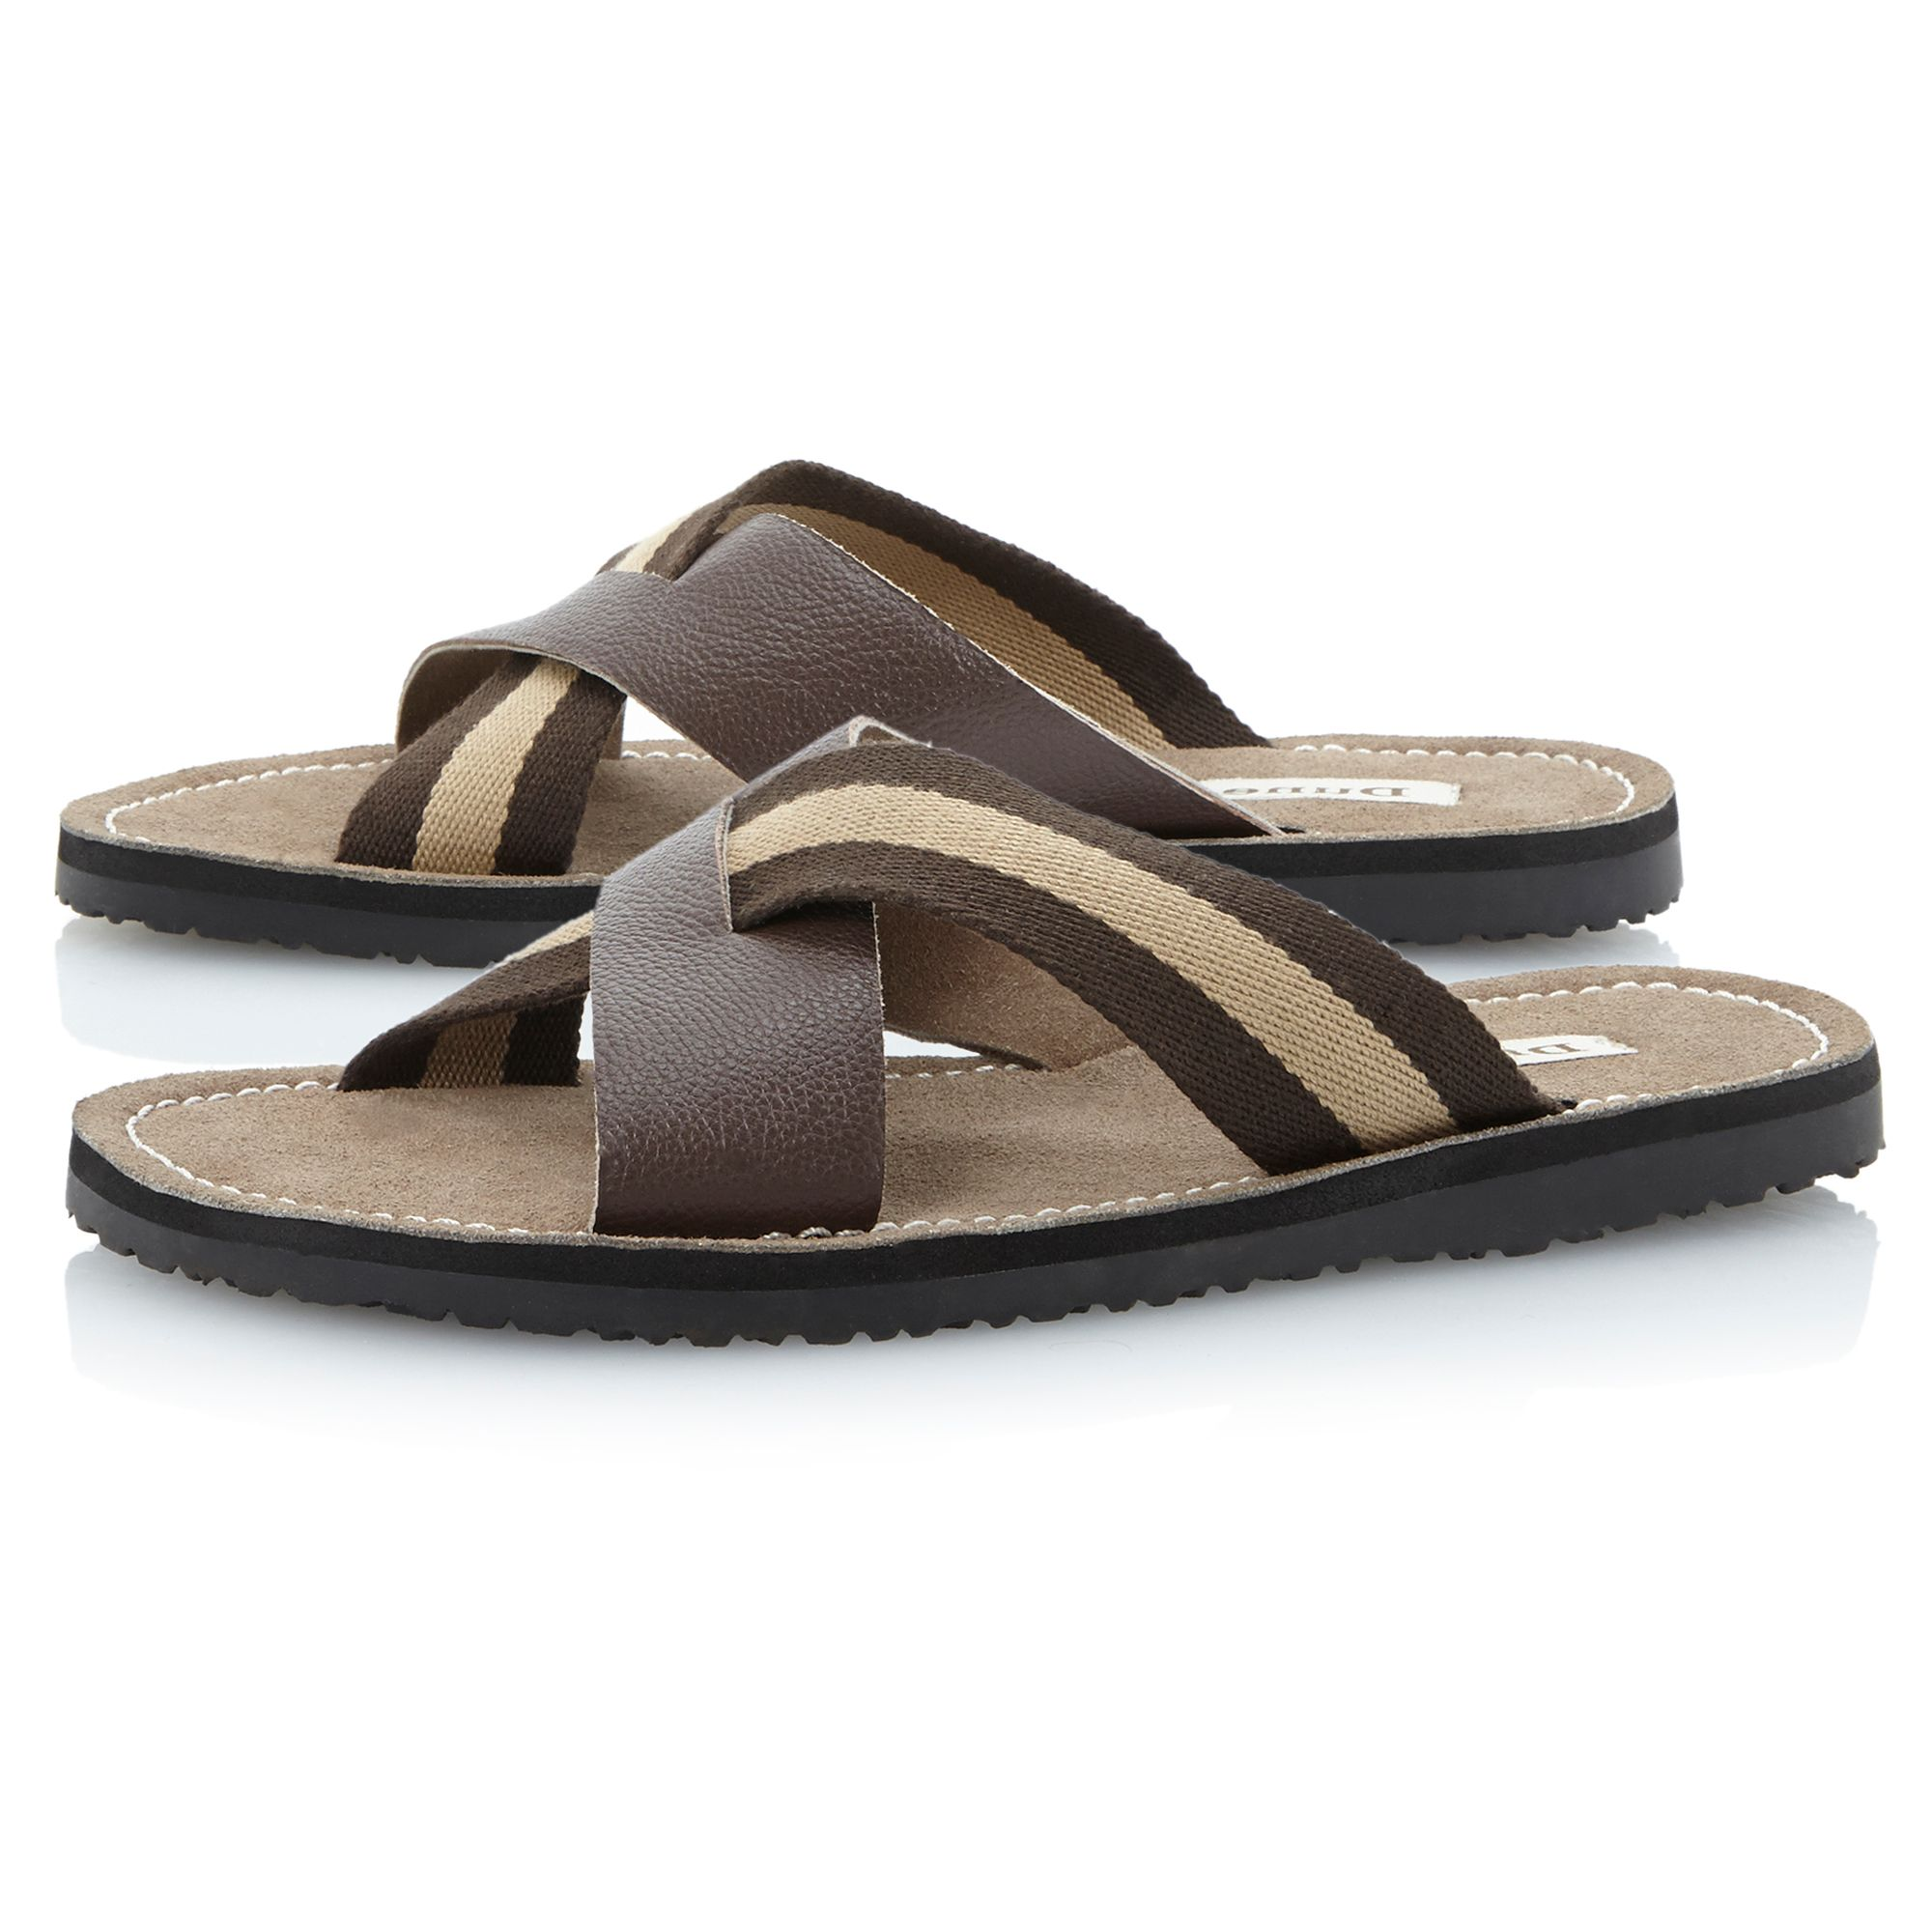 Indiana soft stripe sandal